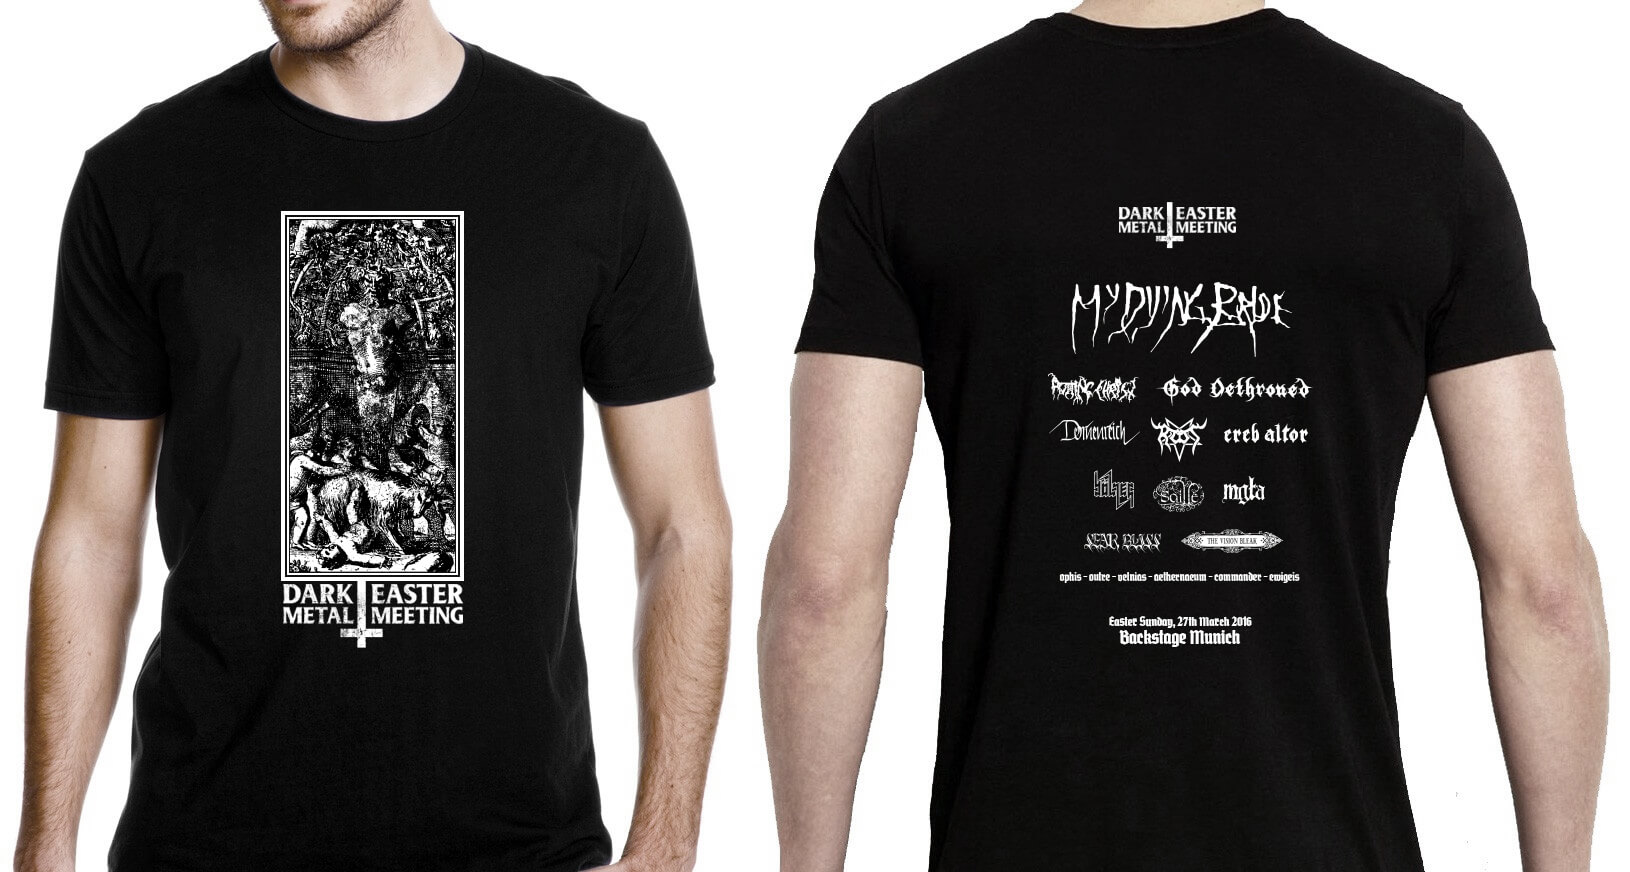 Dark Easter Metal Meeting 2016 T Shirt